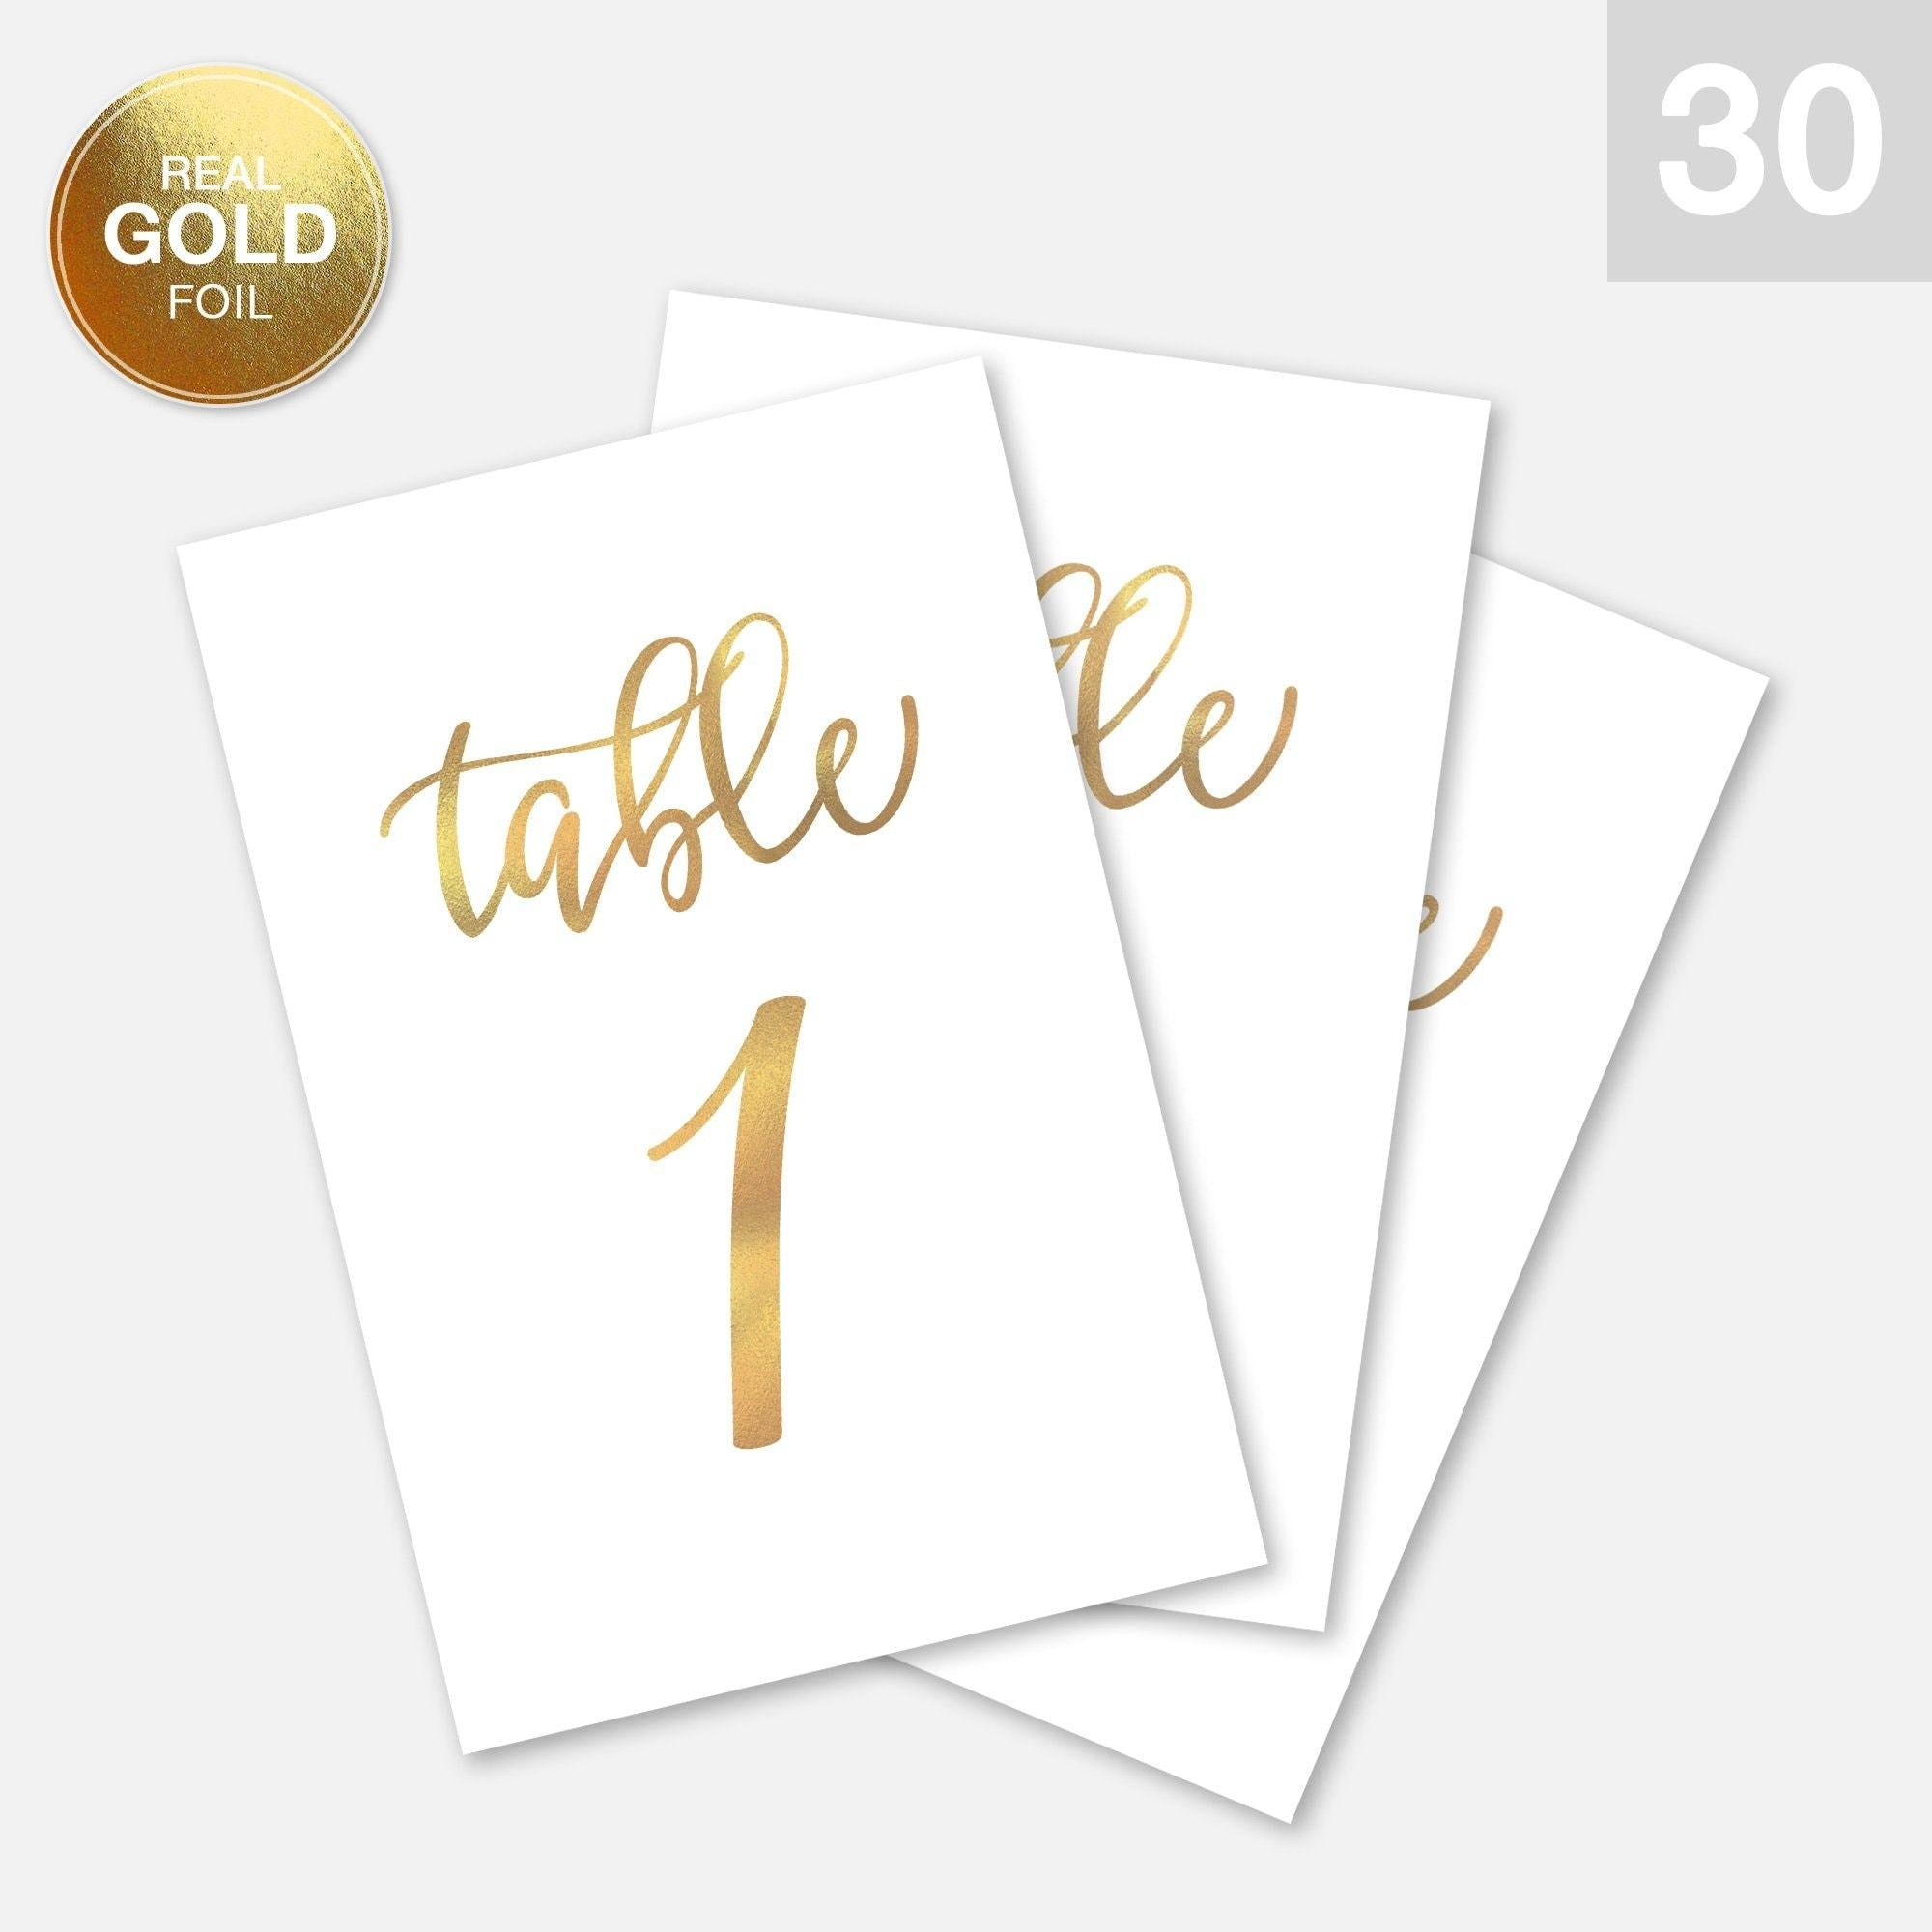 Wedding Table Numbers Cards (1-30 + Head Table) 4x6 Double Sided Modern Calligraphy Foil Design Best for Receptions, Banquets, Cafés, Restaurants & Parties - Merry Expressions